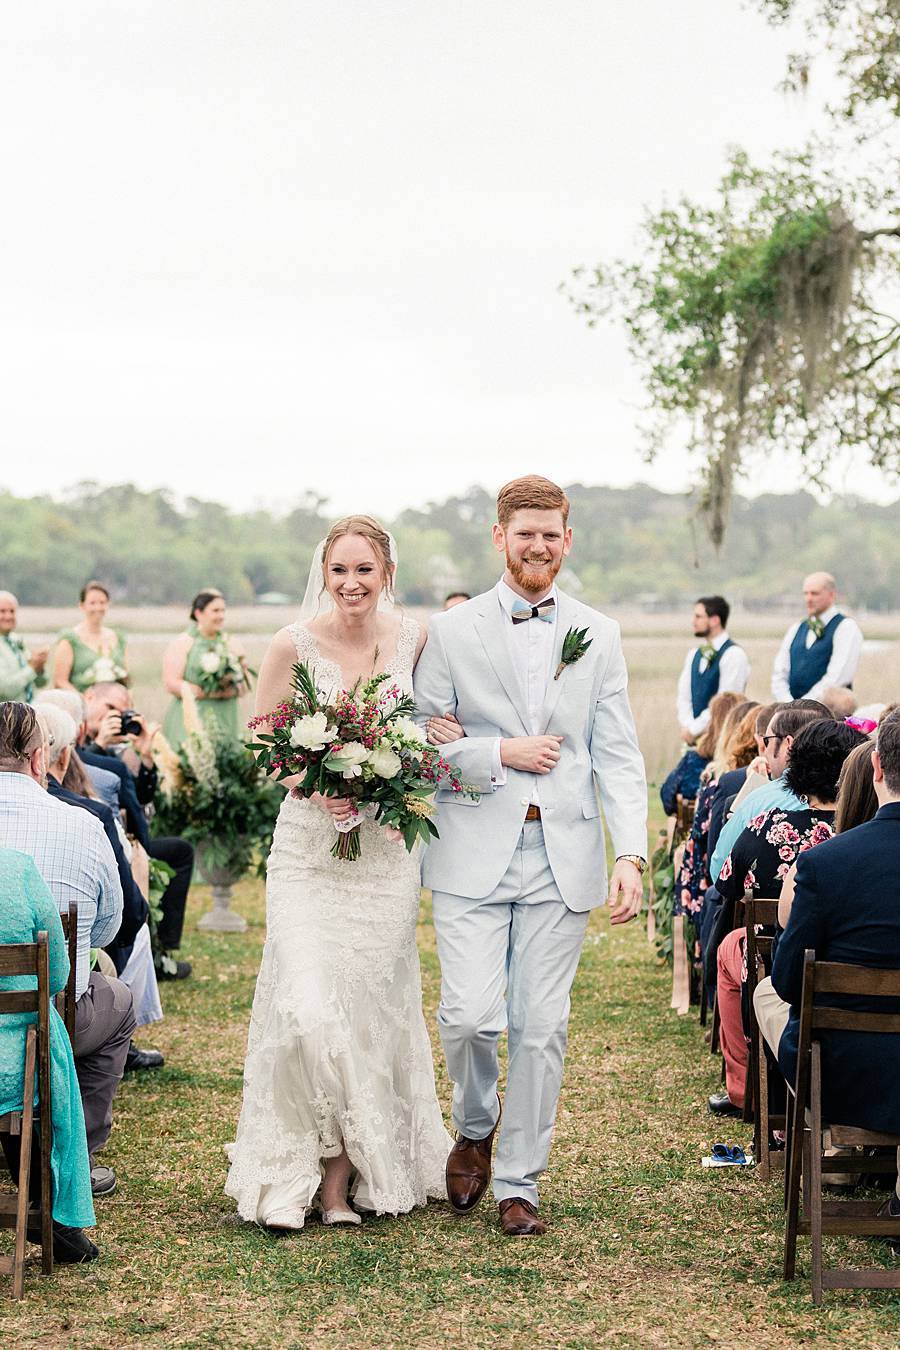 charleston cypress trees april wedding 258_web